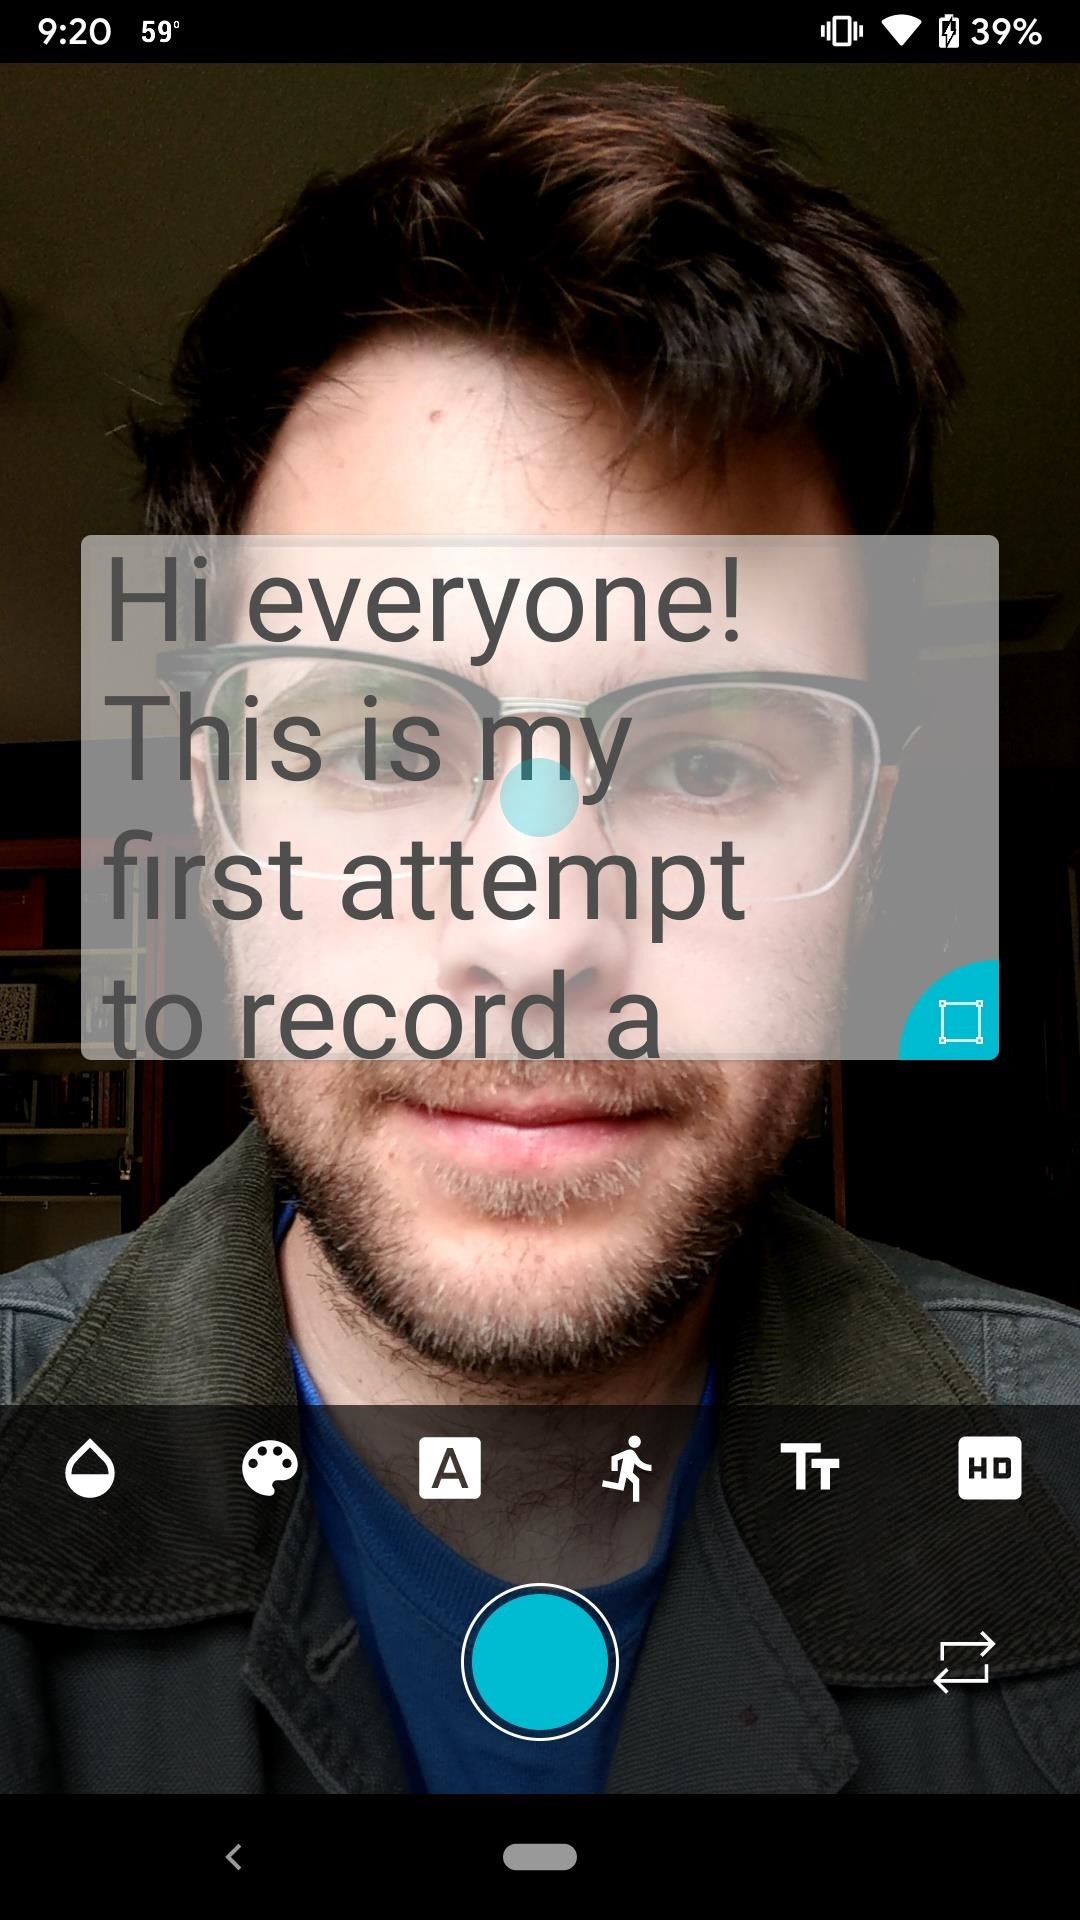 Turn Your Phone into a Teleprompter to Record Selfie Videos Without Breaking Eye Contact